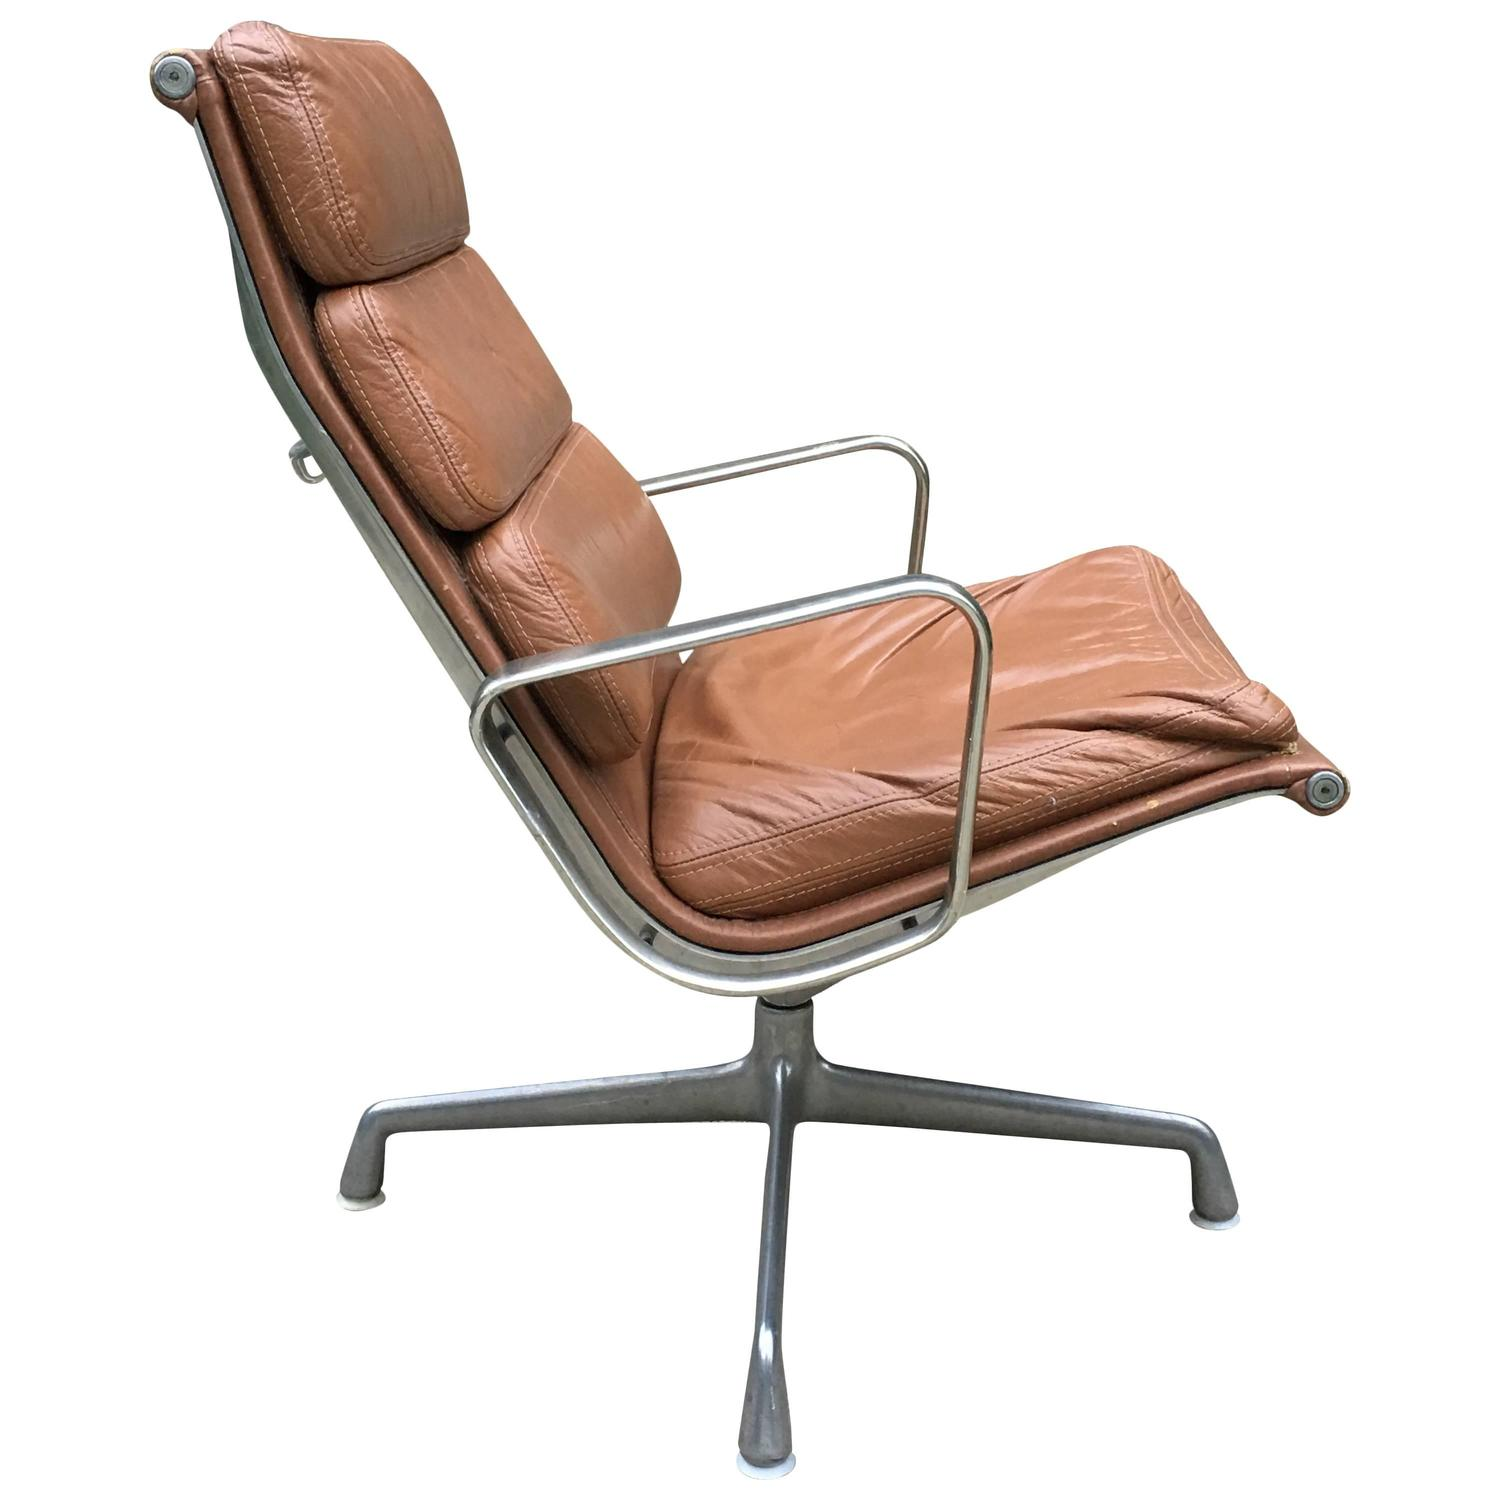 Herman Miller Eames Aluminum Group Soft Pad Lounge Chair For Sale At 1stdibs